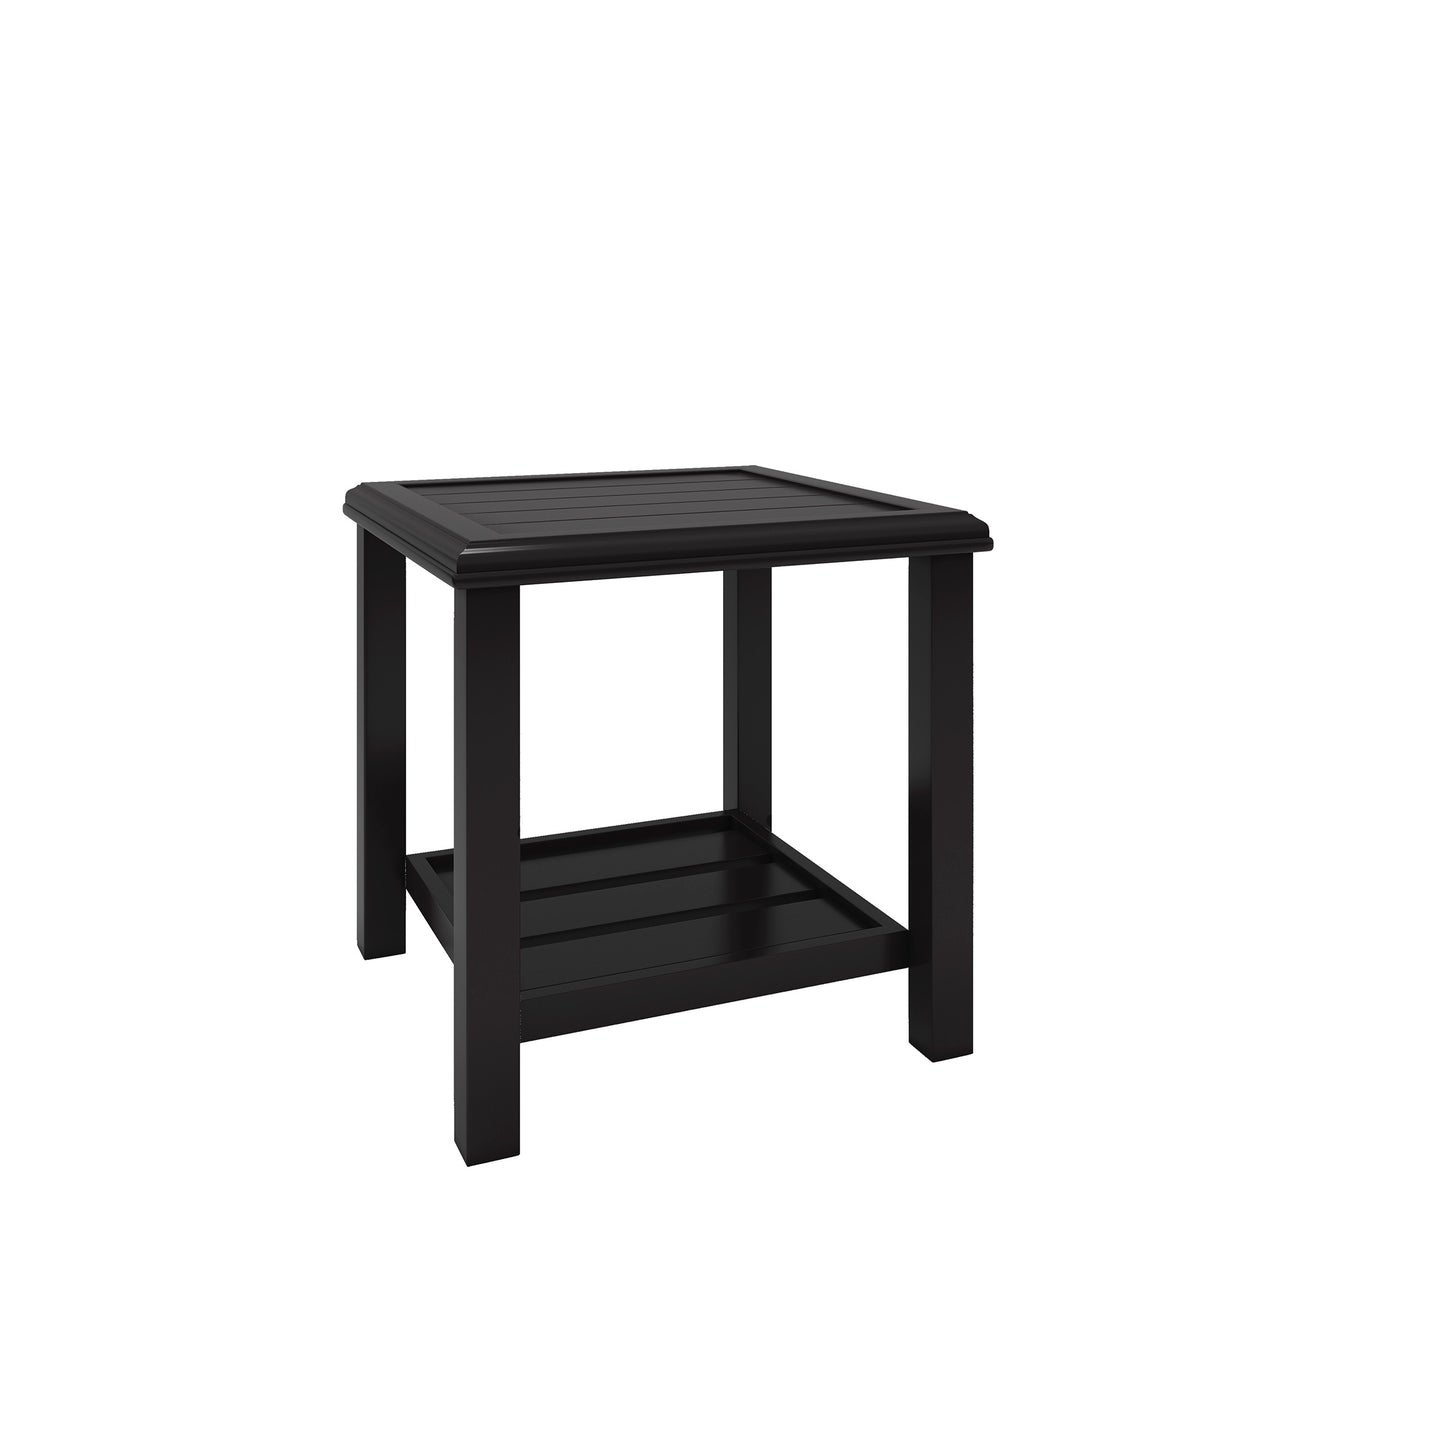 Signature Design P414-702 Castle Island Brown Finish End Table